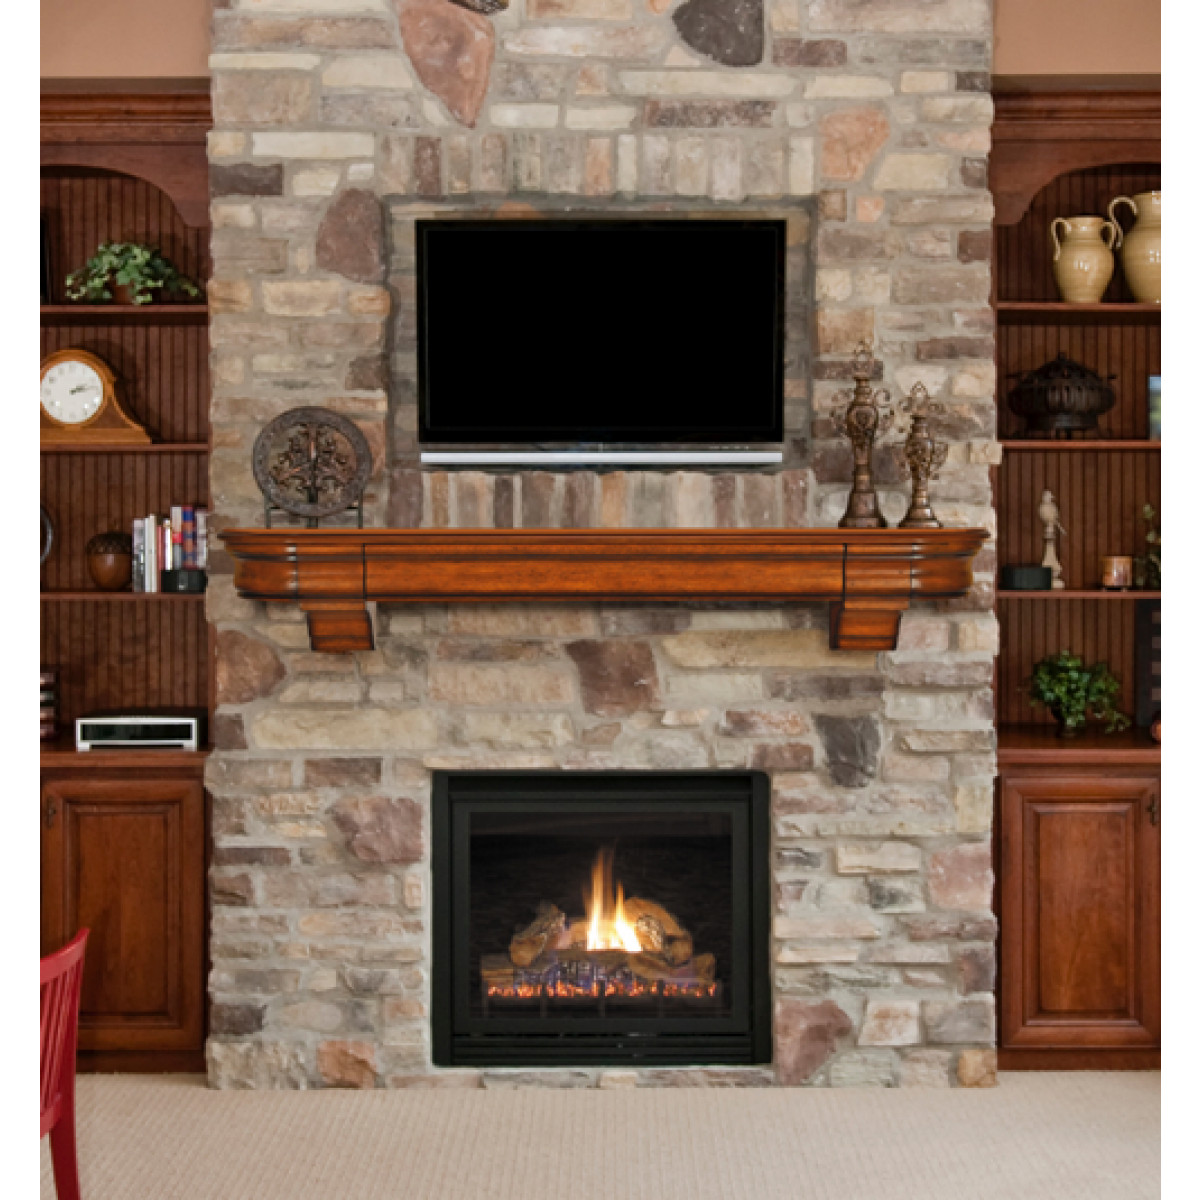 Best ideas about Wood Fireplace Mantels . Save or Pin Natural Wood Fireplace Mantel Shelf With Hidden Drawer Now.